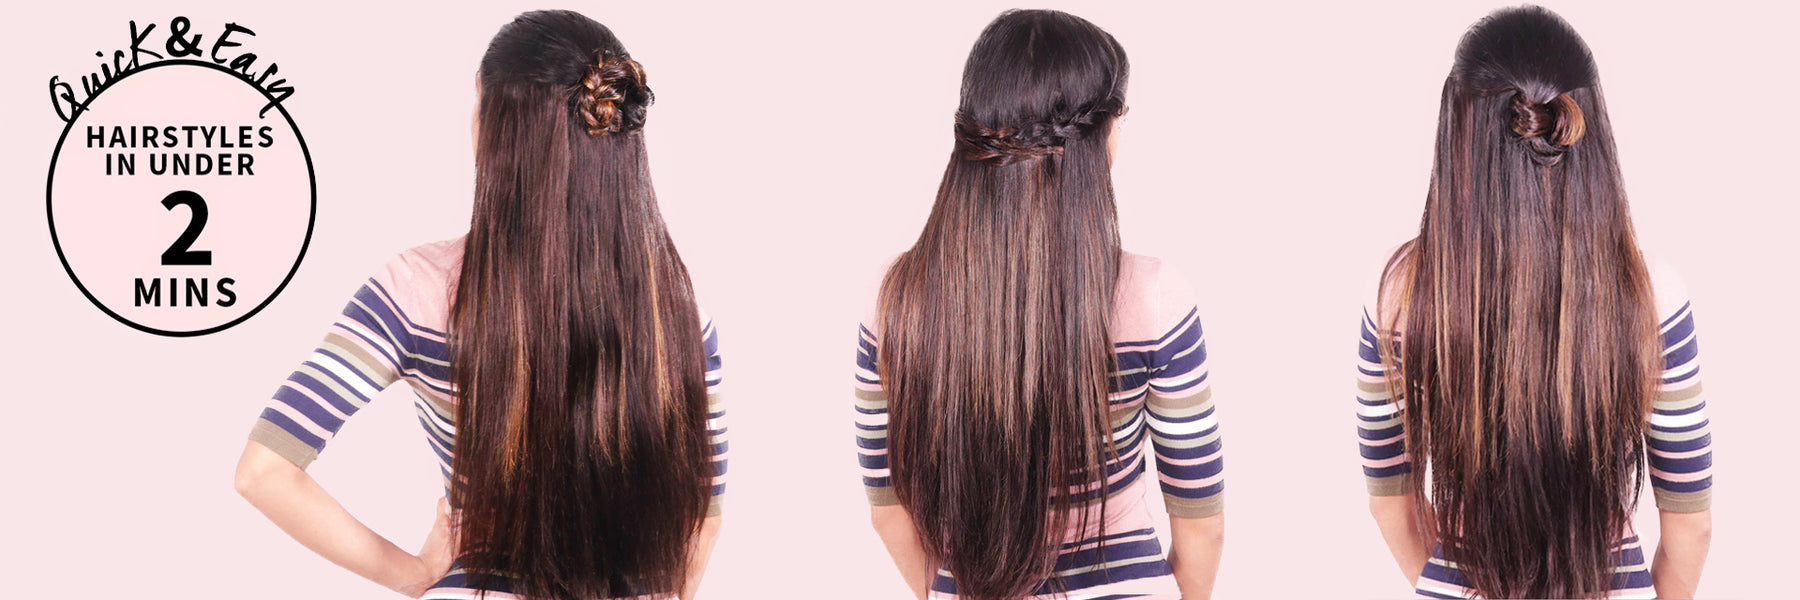 3 Easy Everyday Hairstyles Hairstyles In Under 2 Minutes Razzl